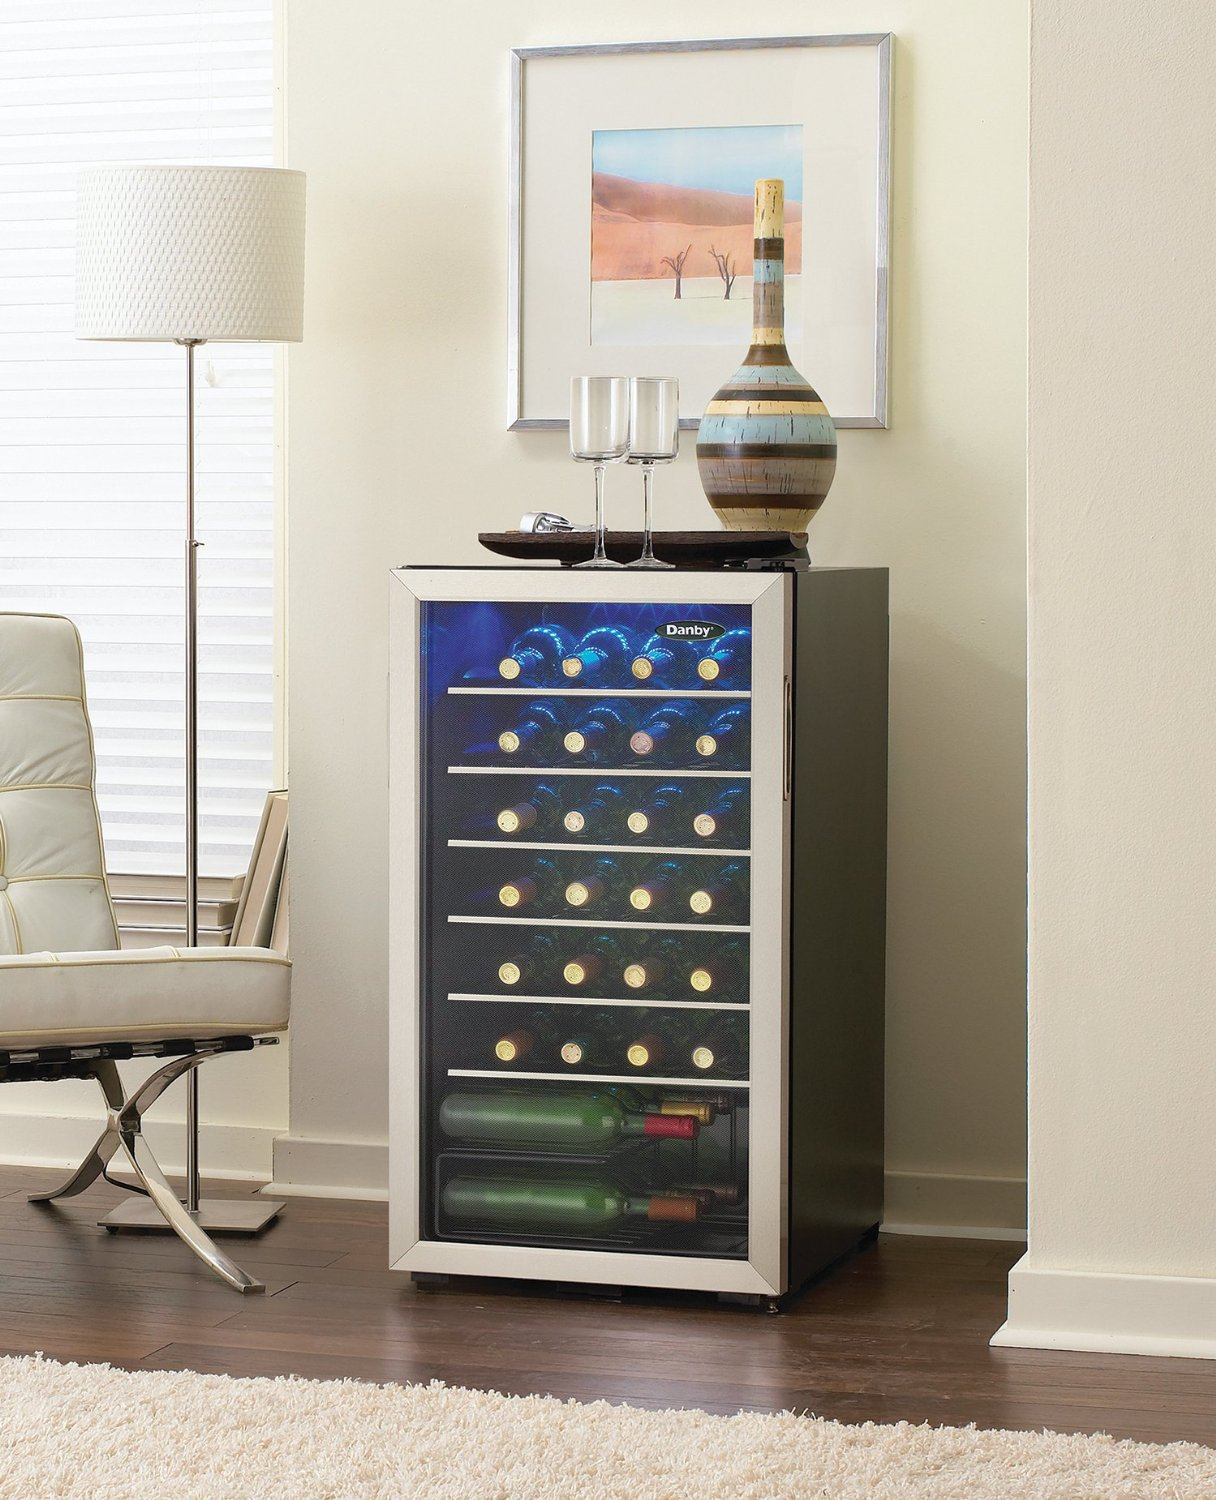 Danby DWC93BLSDB 36 Bottle Freestanding Wine Cooler